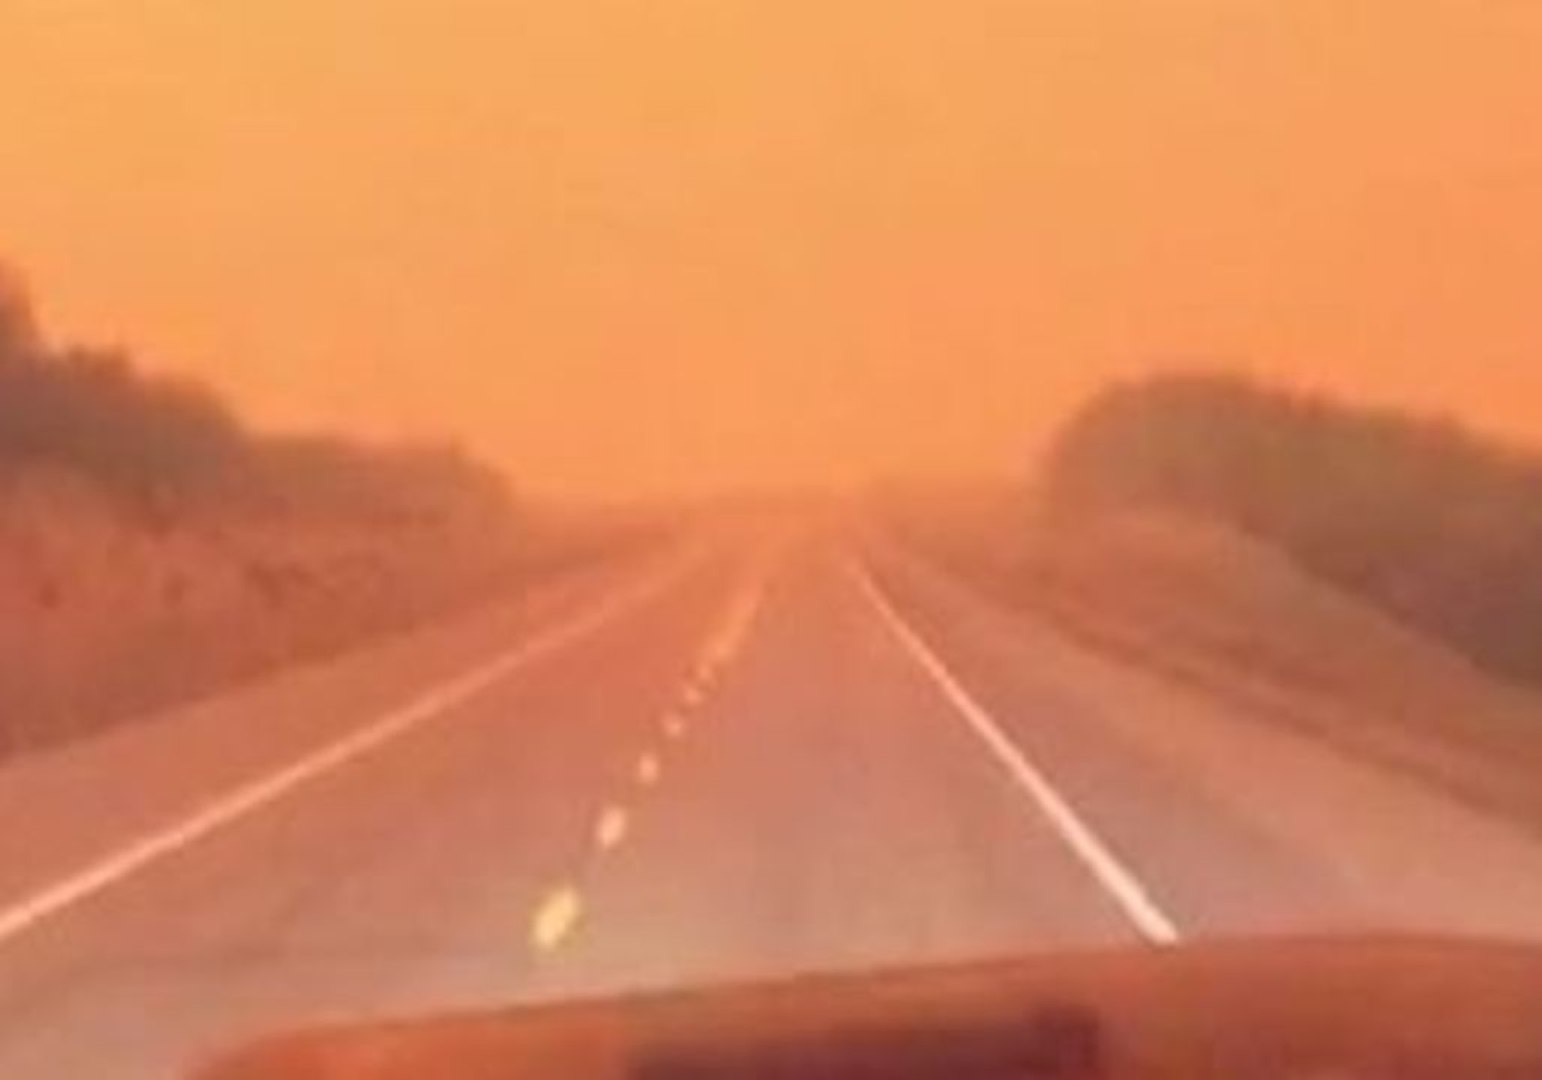 Truckers Drive Through Smoke Near Wildfire in Rural British Columbia